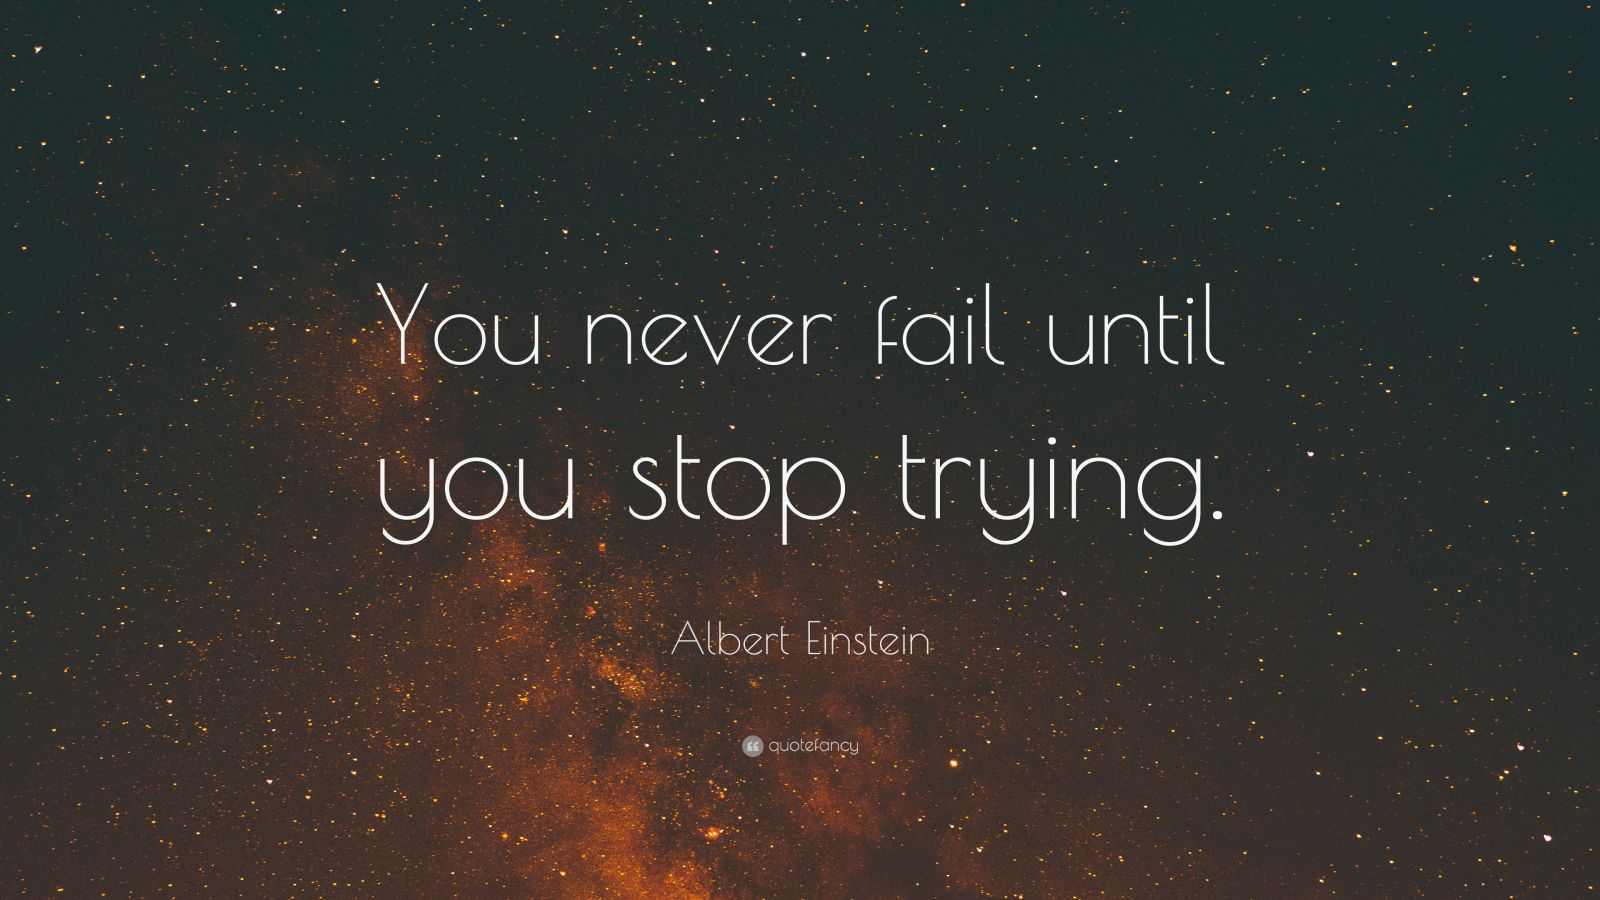 Albert einstein quotes 100 wallpapers quotefancy albert einstein quote you never fail until you stop trying voltagebd Choice Image